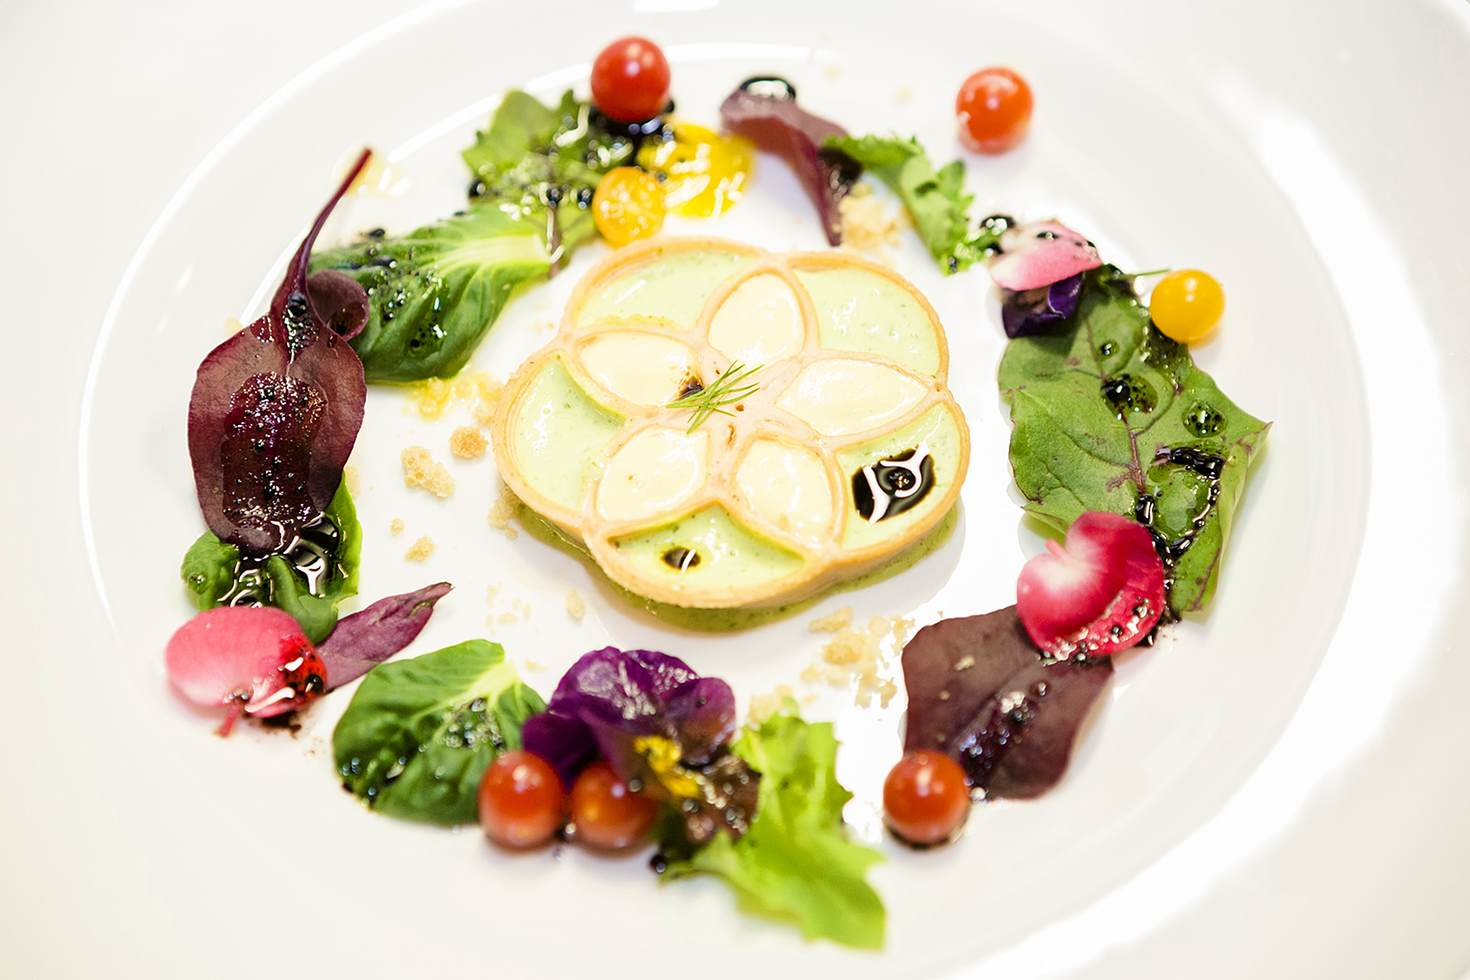 One of delicacies from Food Ink's first meal in Amsterdam © Frederik Buyckx